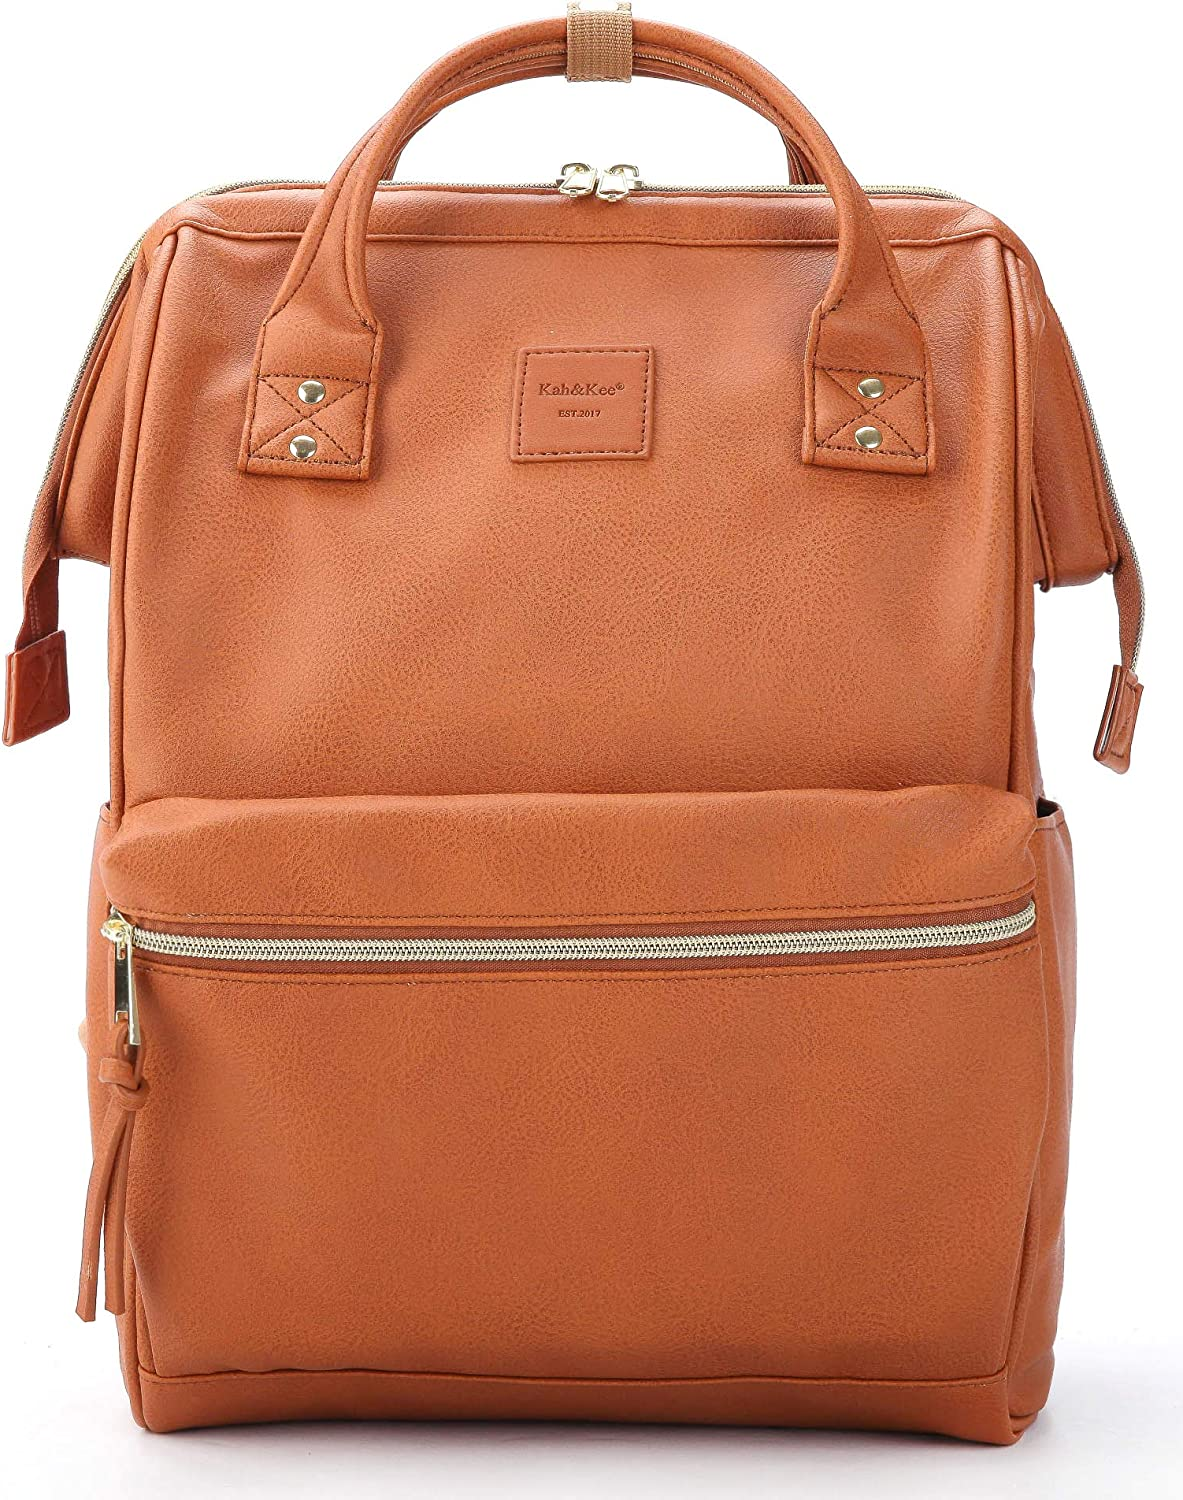 Kah&Kee Leather Backpack Diaper Bag with Laptop Compartment Travel School for Women Man (Camel, Large)